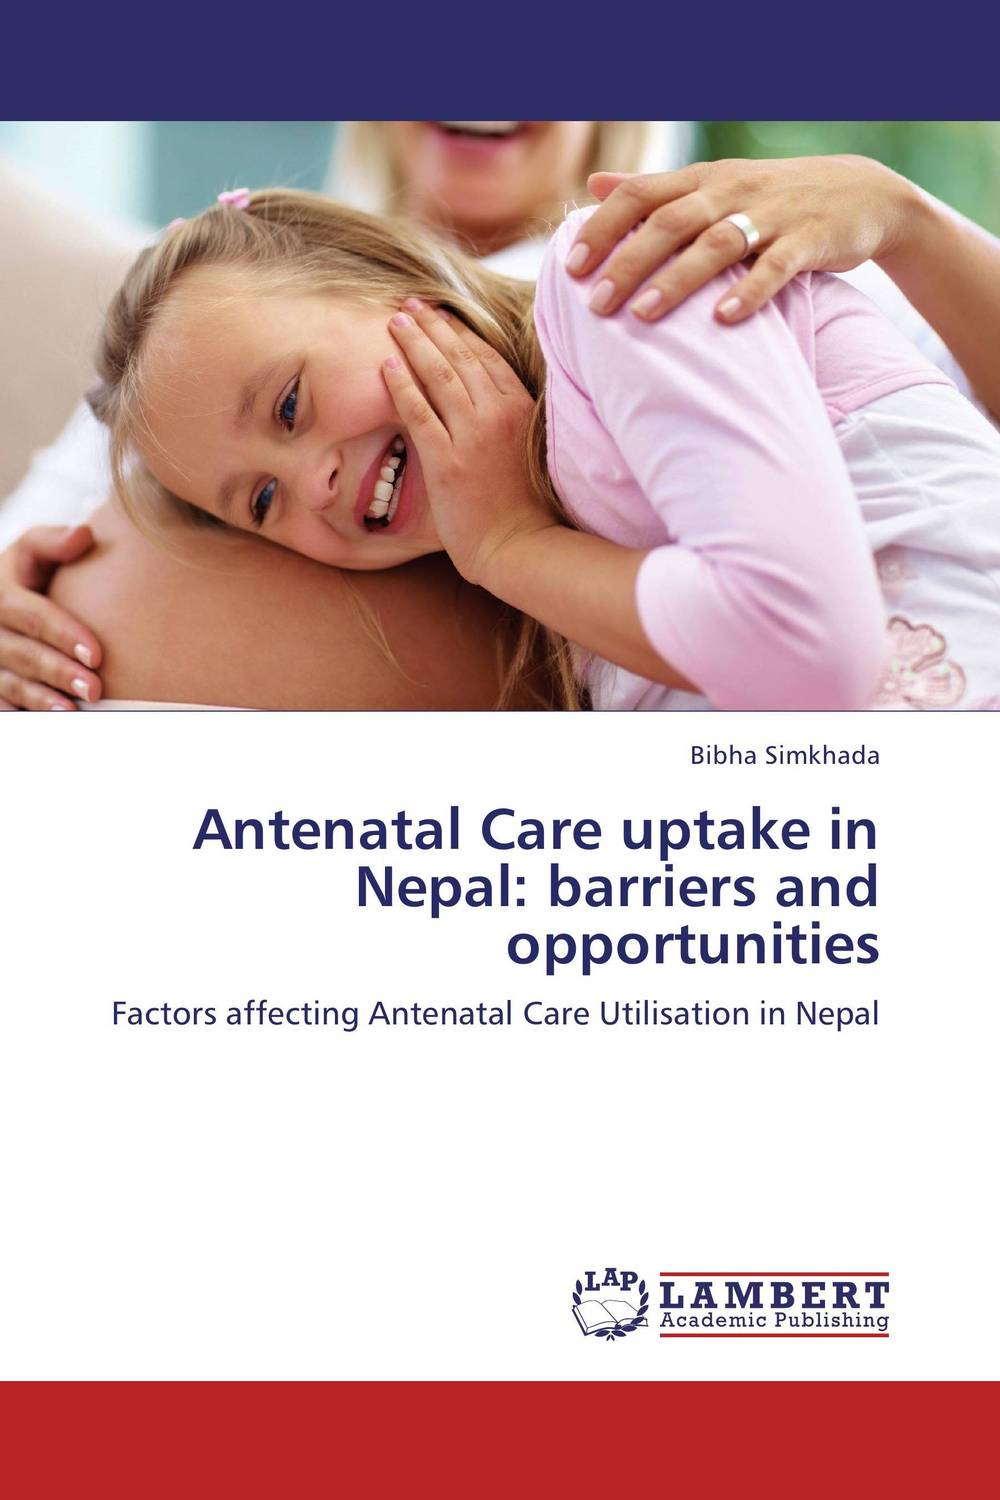 Antenatal Care uptake in Nepal: barriers and opportunities